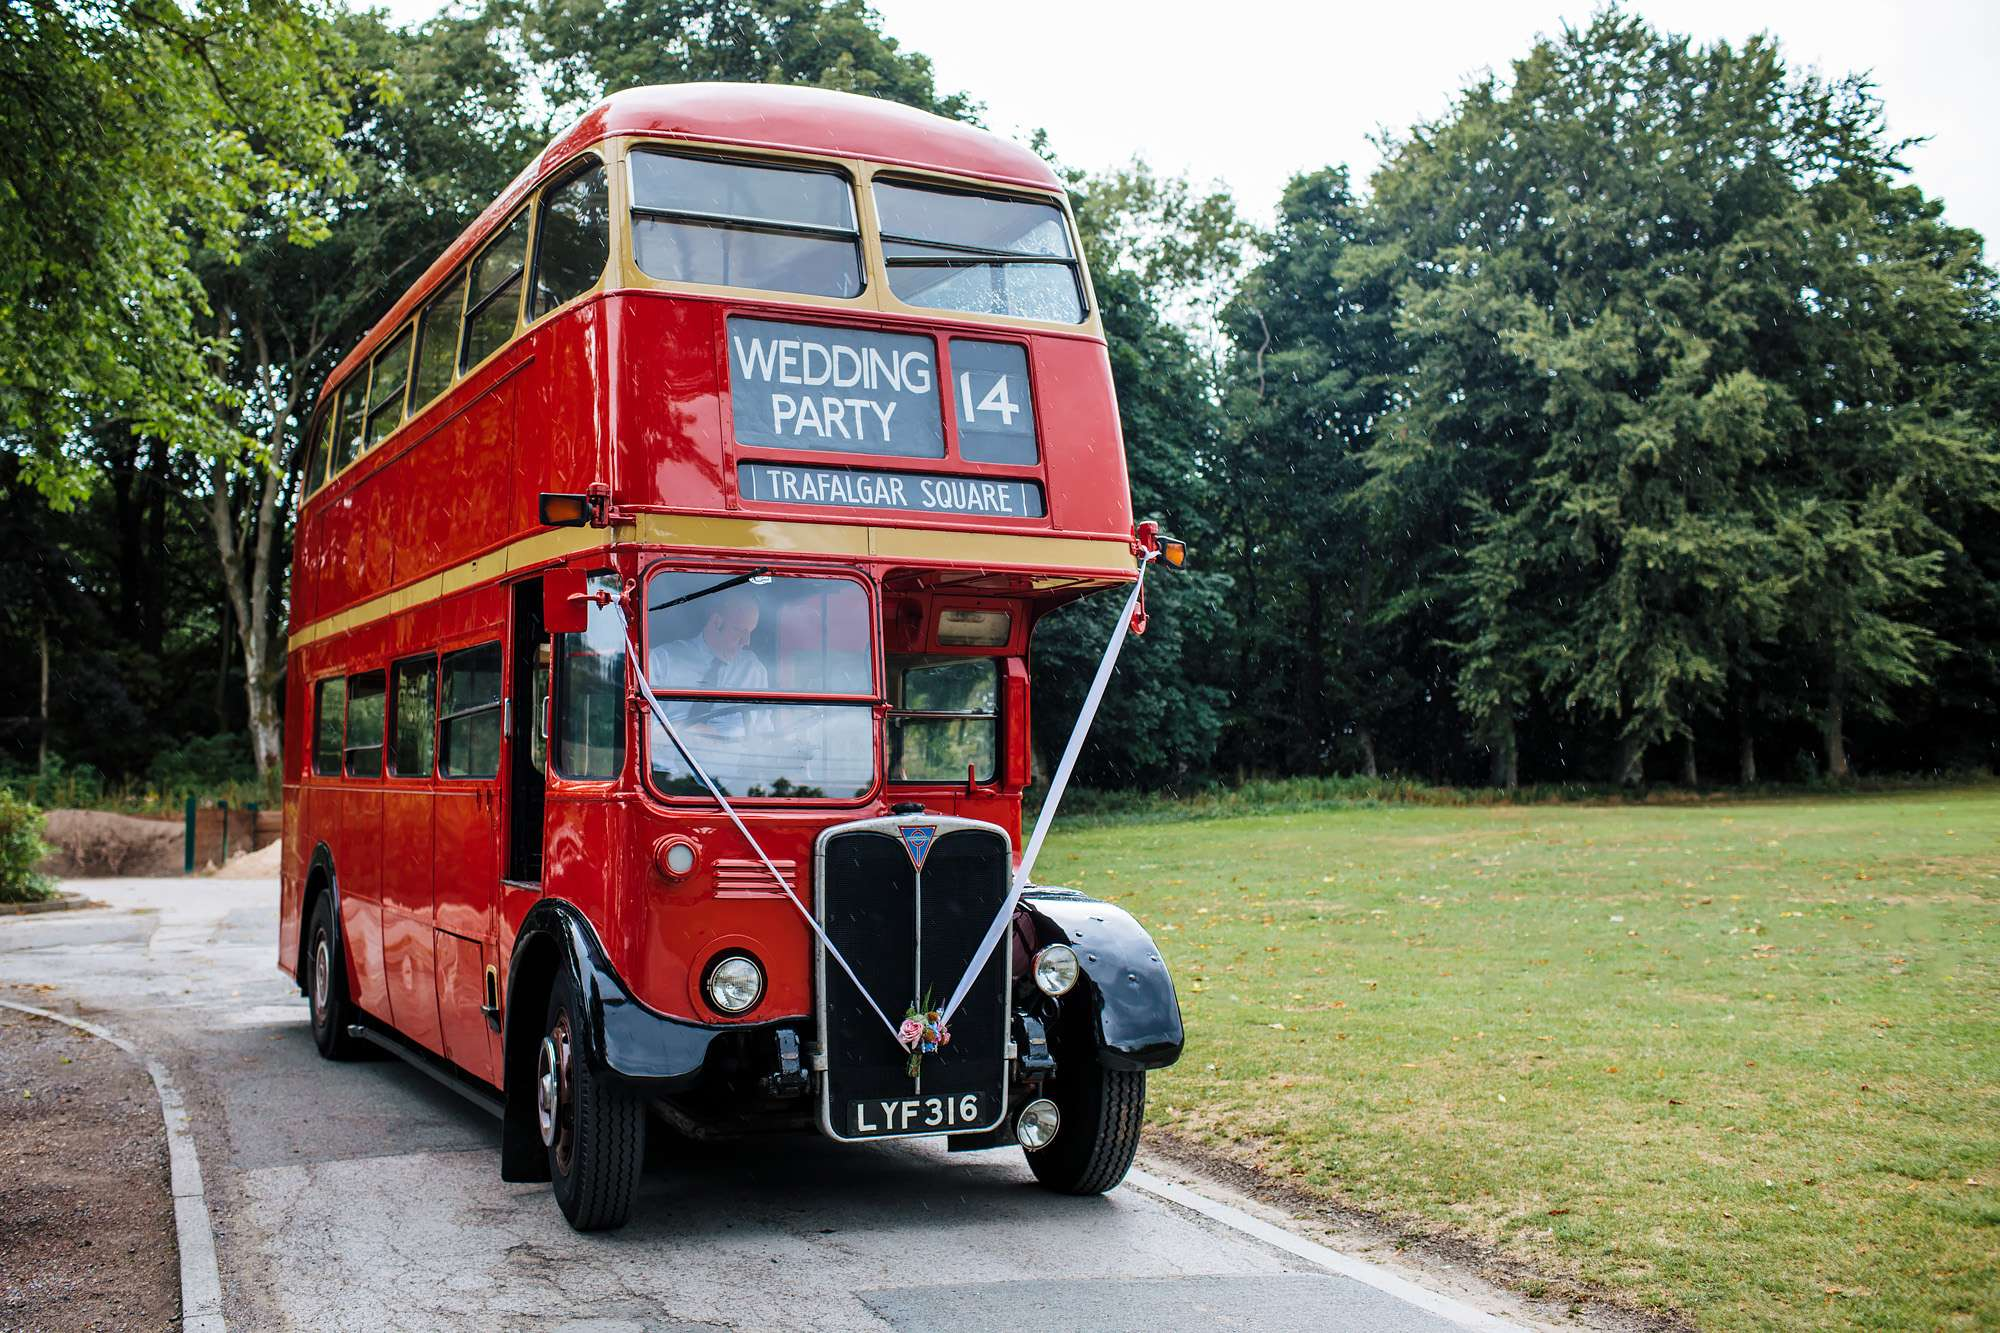 Vintage red double decker bus for a wedding party